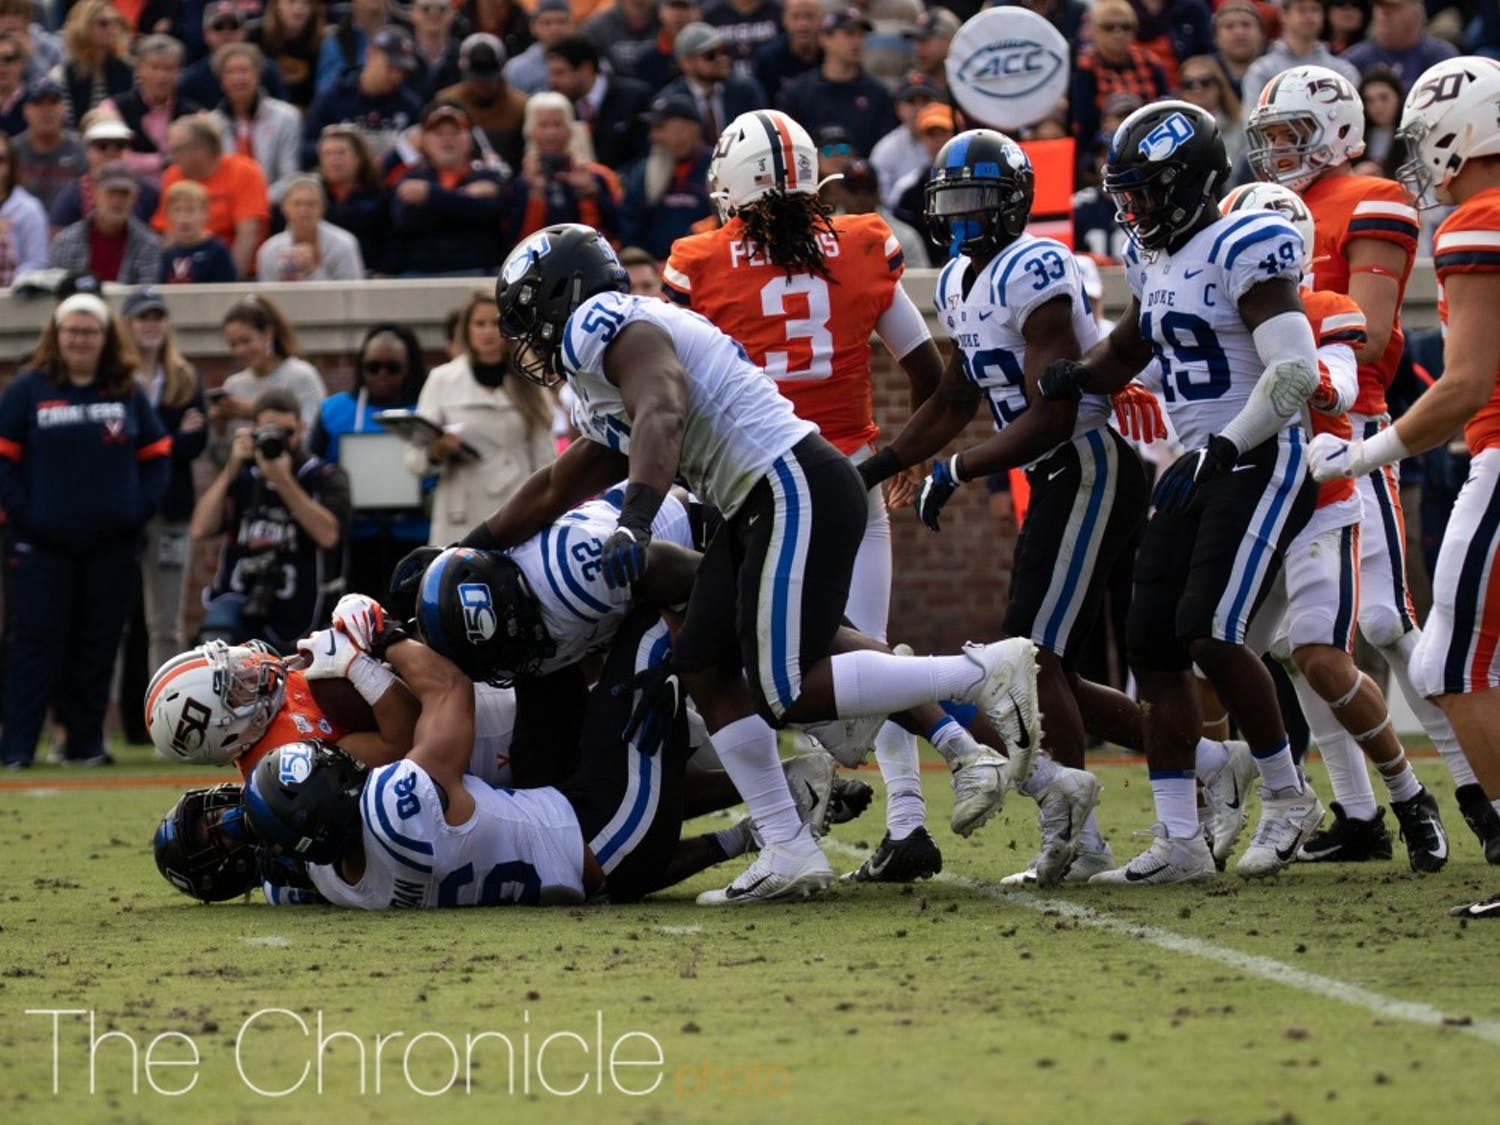 Duke's defense will need to bounce back against the Tar Heels.